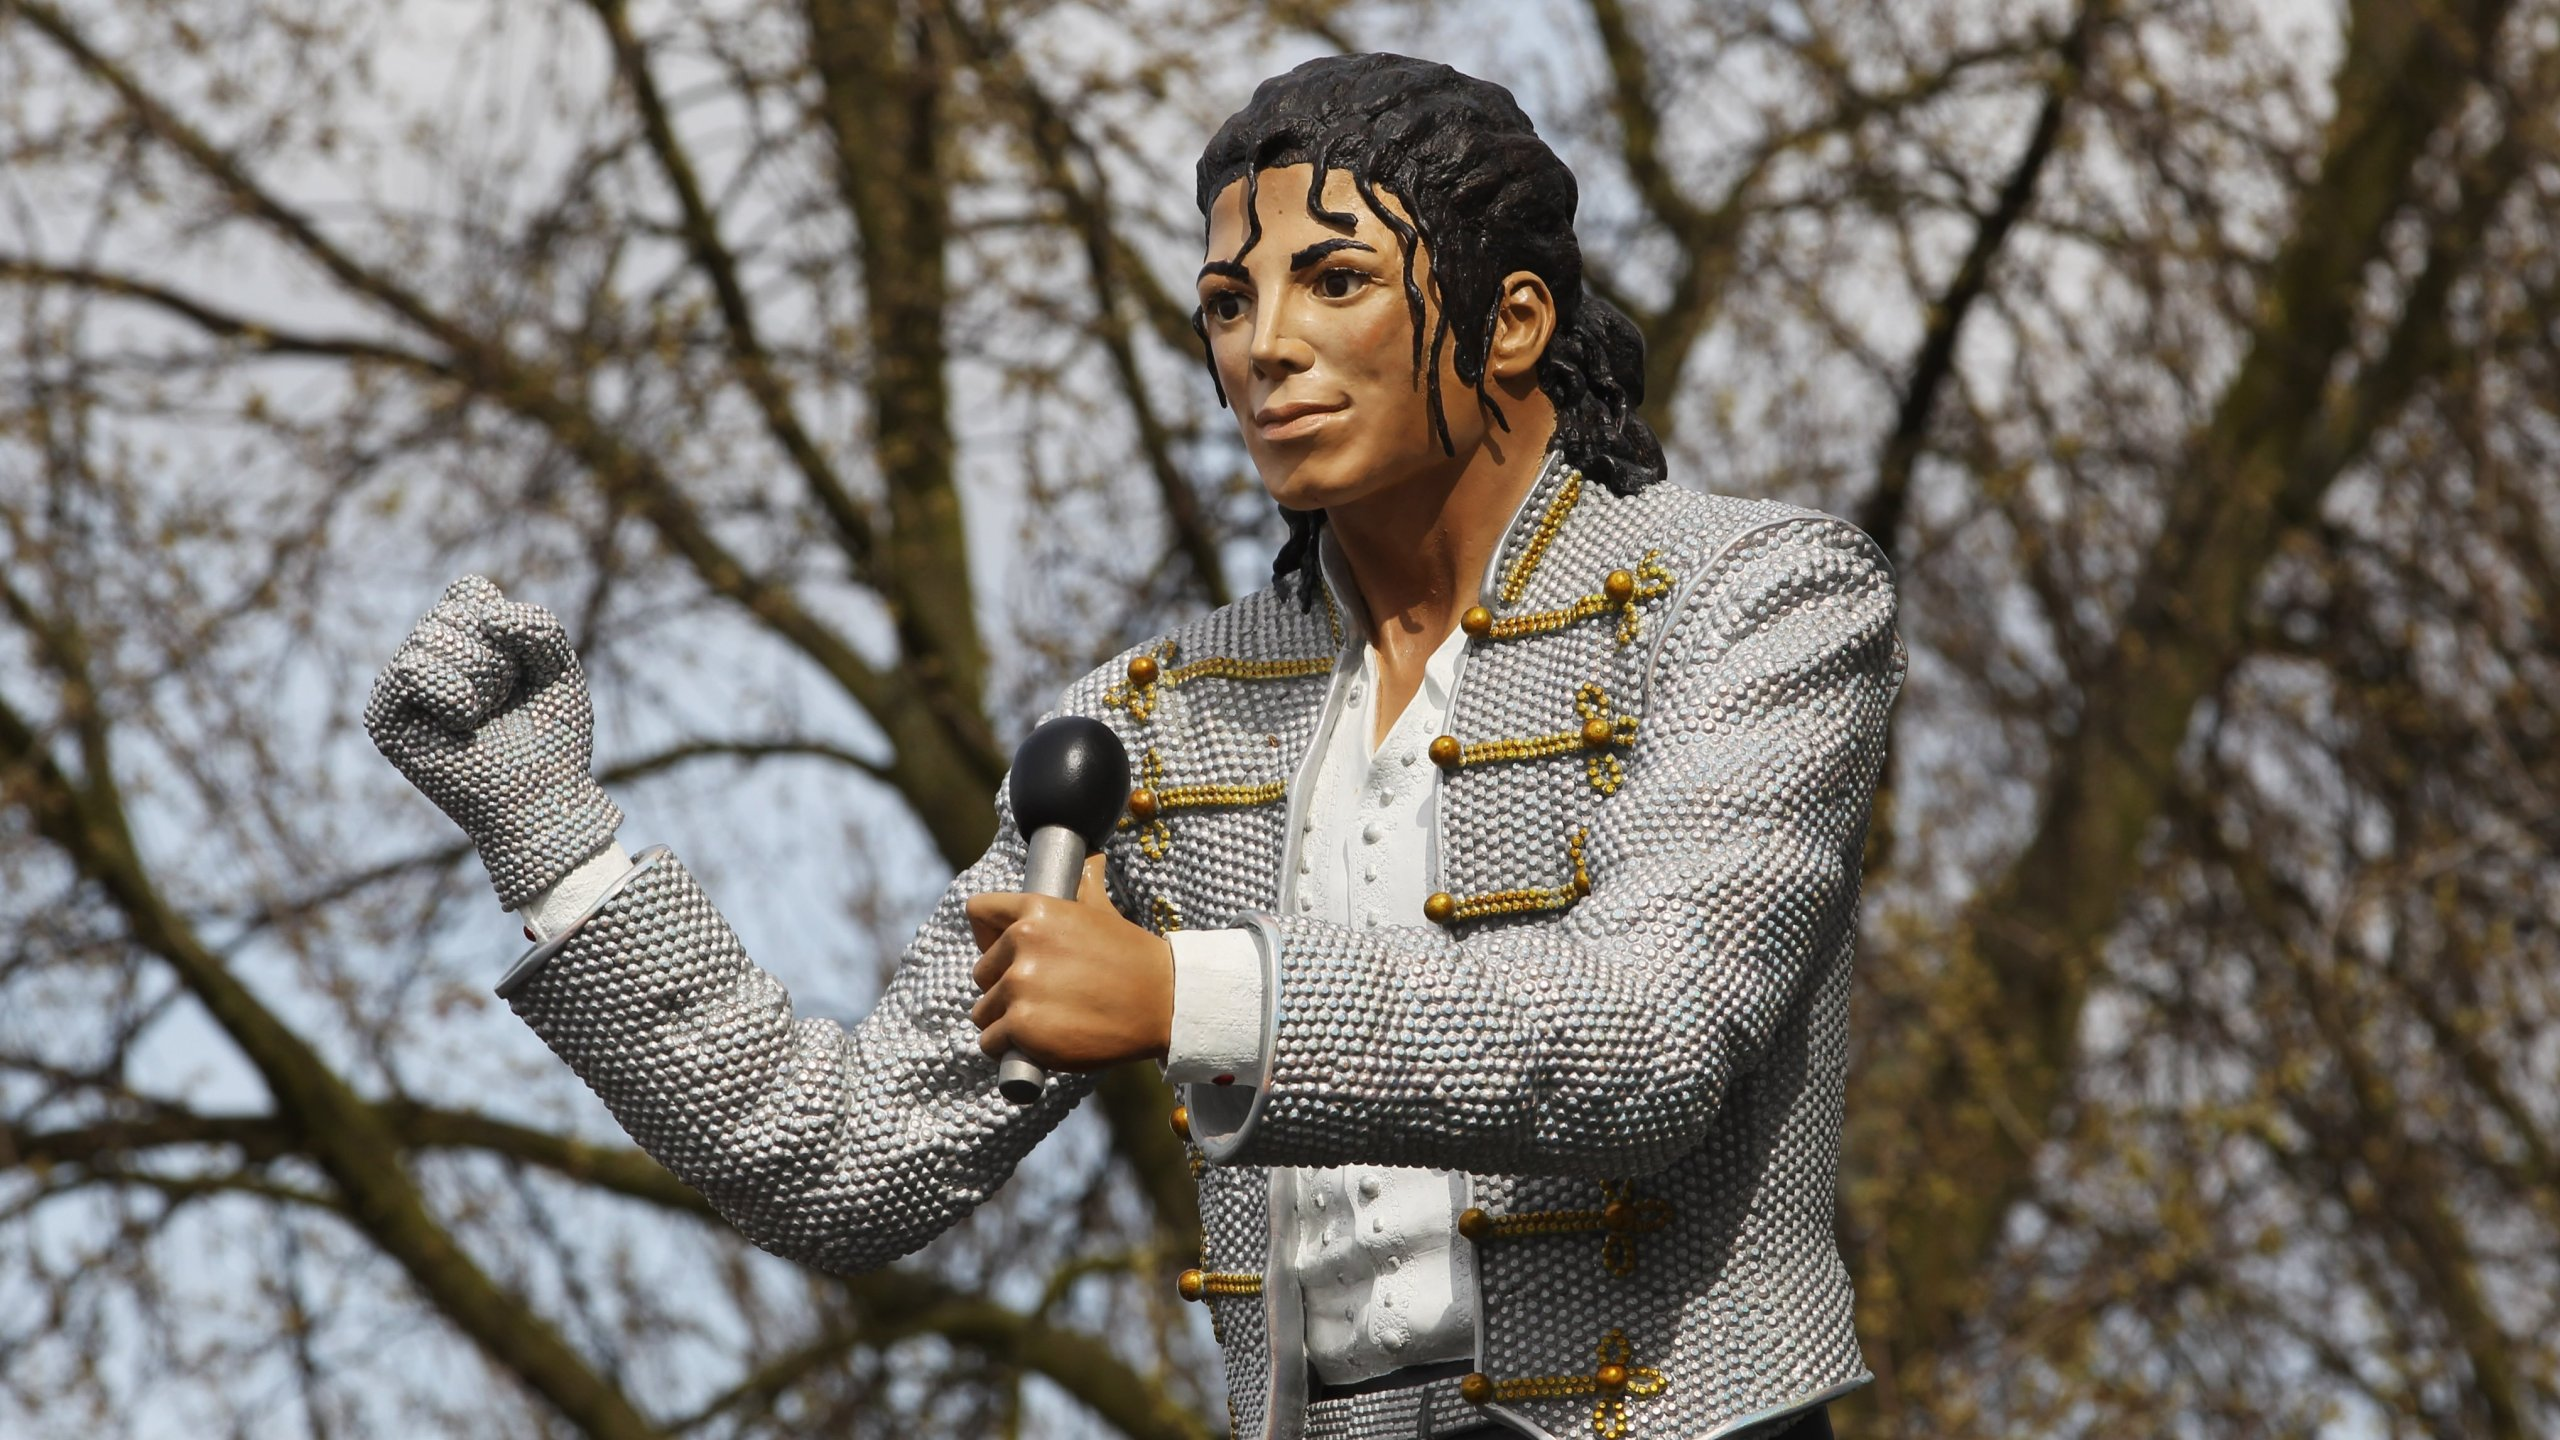 A statue of Michael Jackson has been removed from Britain's National Football Museum in the wake of fresh allegations of sexual abuse that continue to surround the pop superstar's legacy. (Credit: Ian Walton/Getty Images)